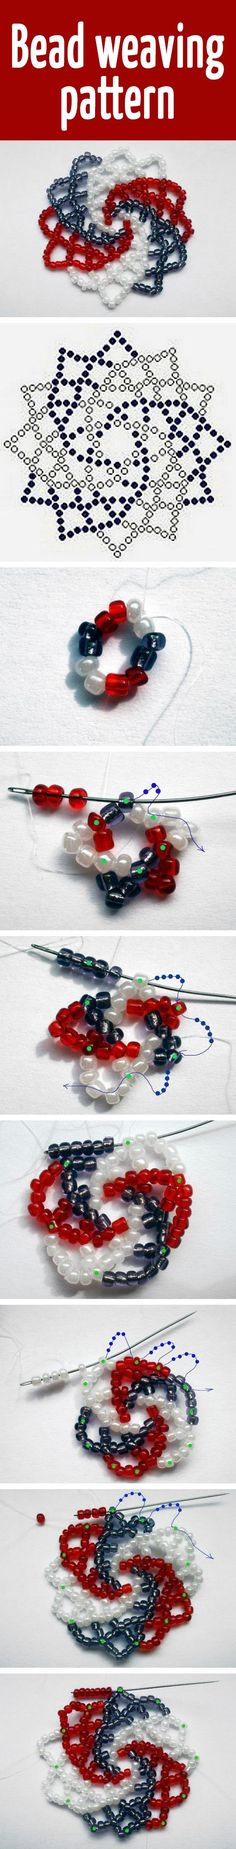 Seed bead jewelry Bead weaving pattern Discovred by : Linda Linebaugh Seed Bead Patterns, Beaded Jewelry Patterns, Weaving Patterns, Seed Bead Jewelry, Seed Bead Earrings, Seed Beads, Beaded Crafts, Jewelry Crafts, Twin Beads